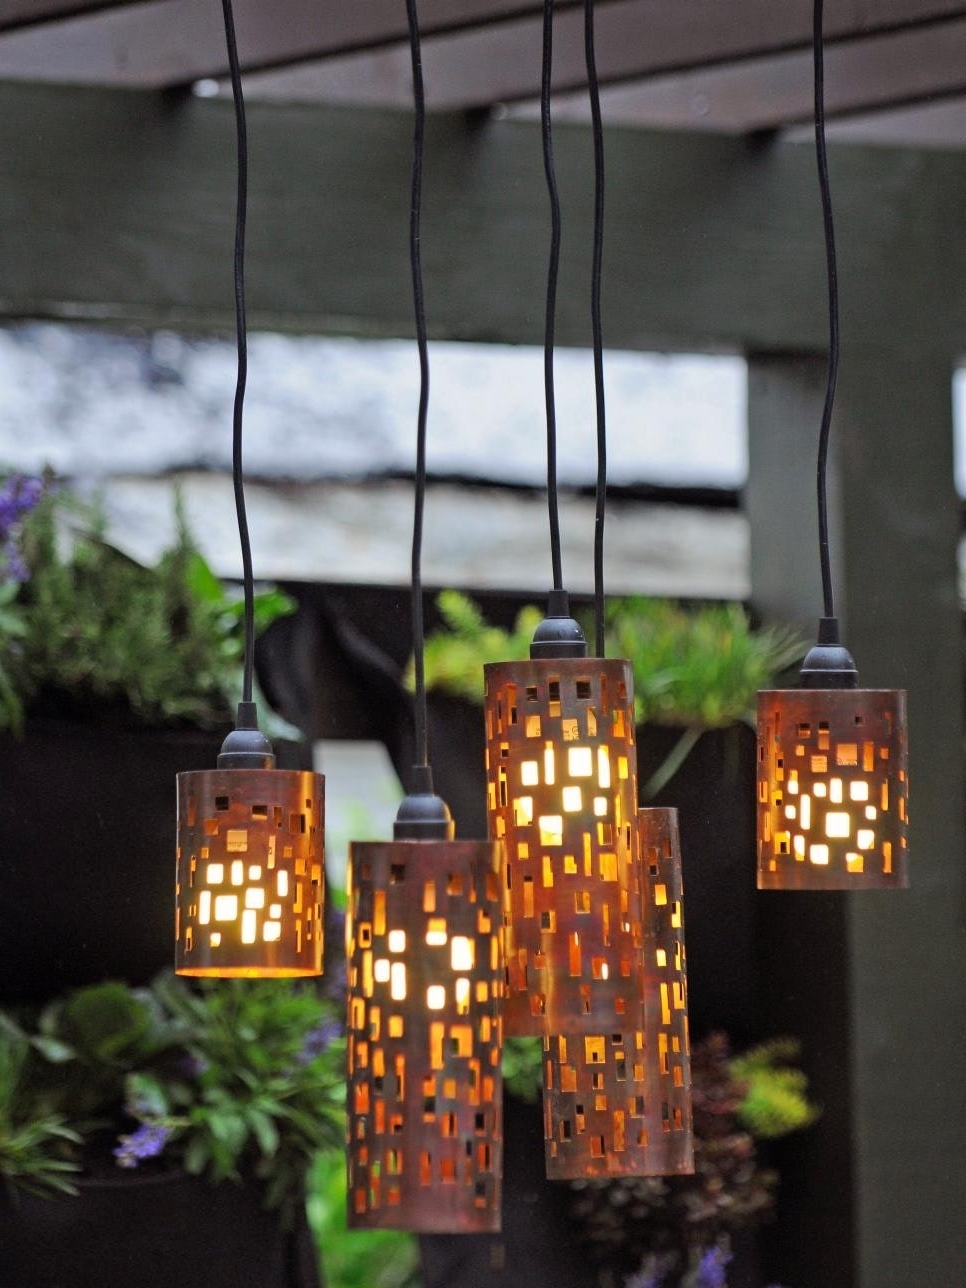 Outdoor Hanging Lanterns With Battery Operated With Regard To 2019 Chandeliers Design : Fabulous Battery Operated Outdoor Chandeliers (View 12 of 20)